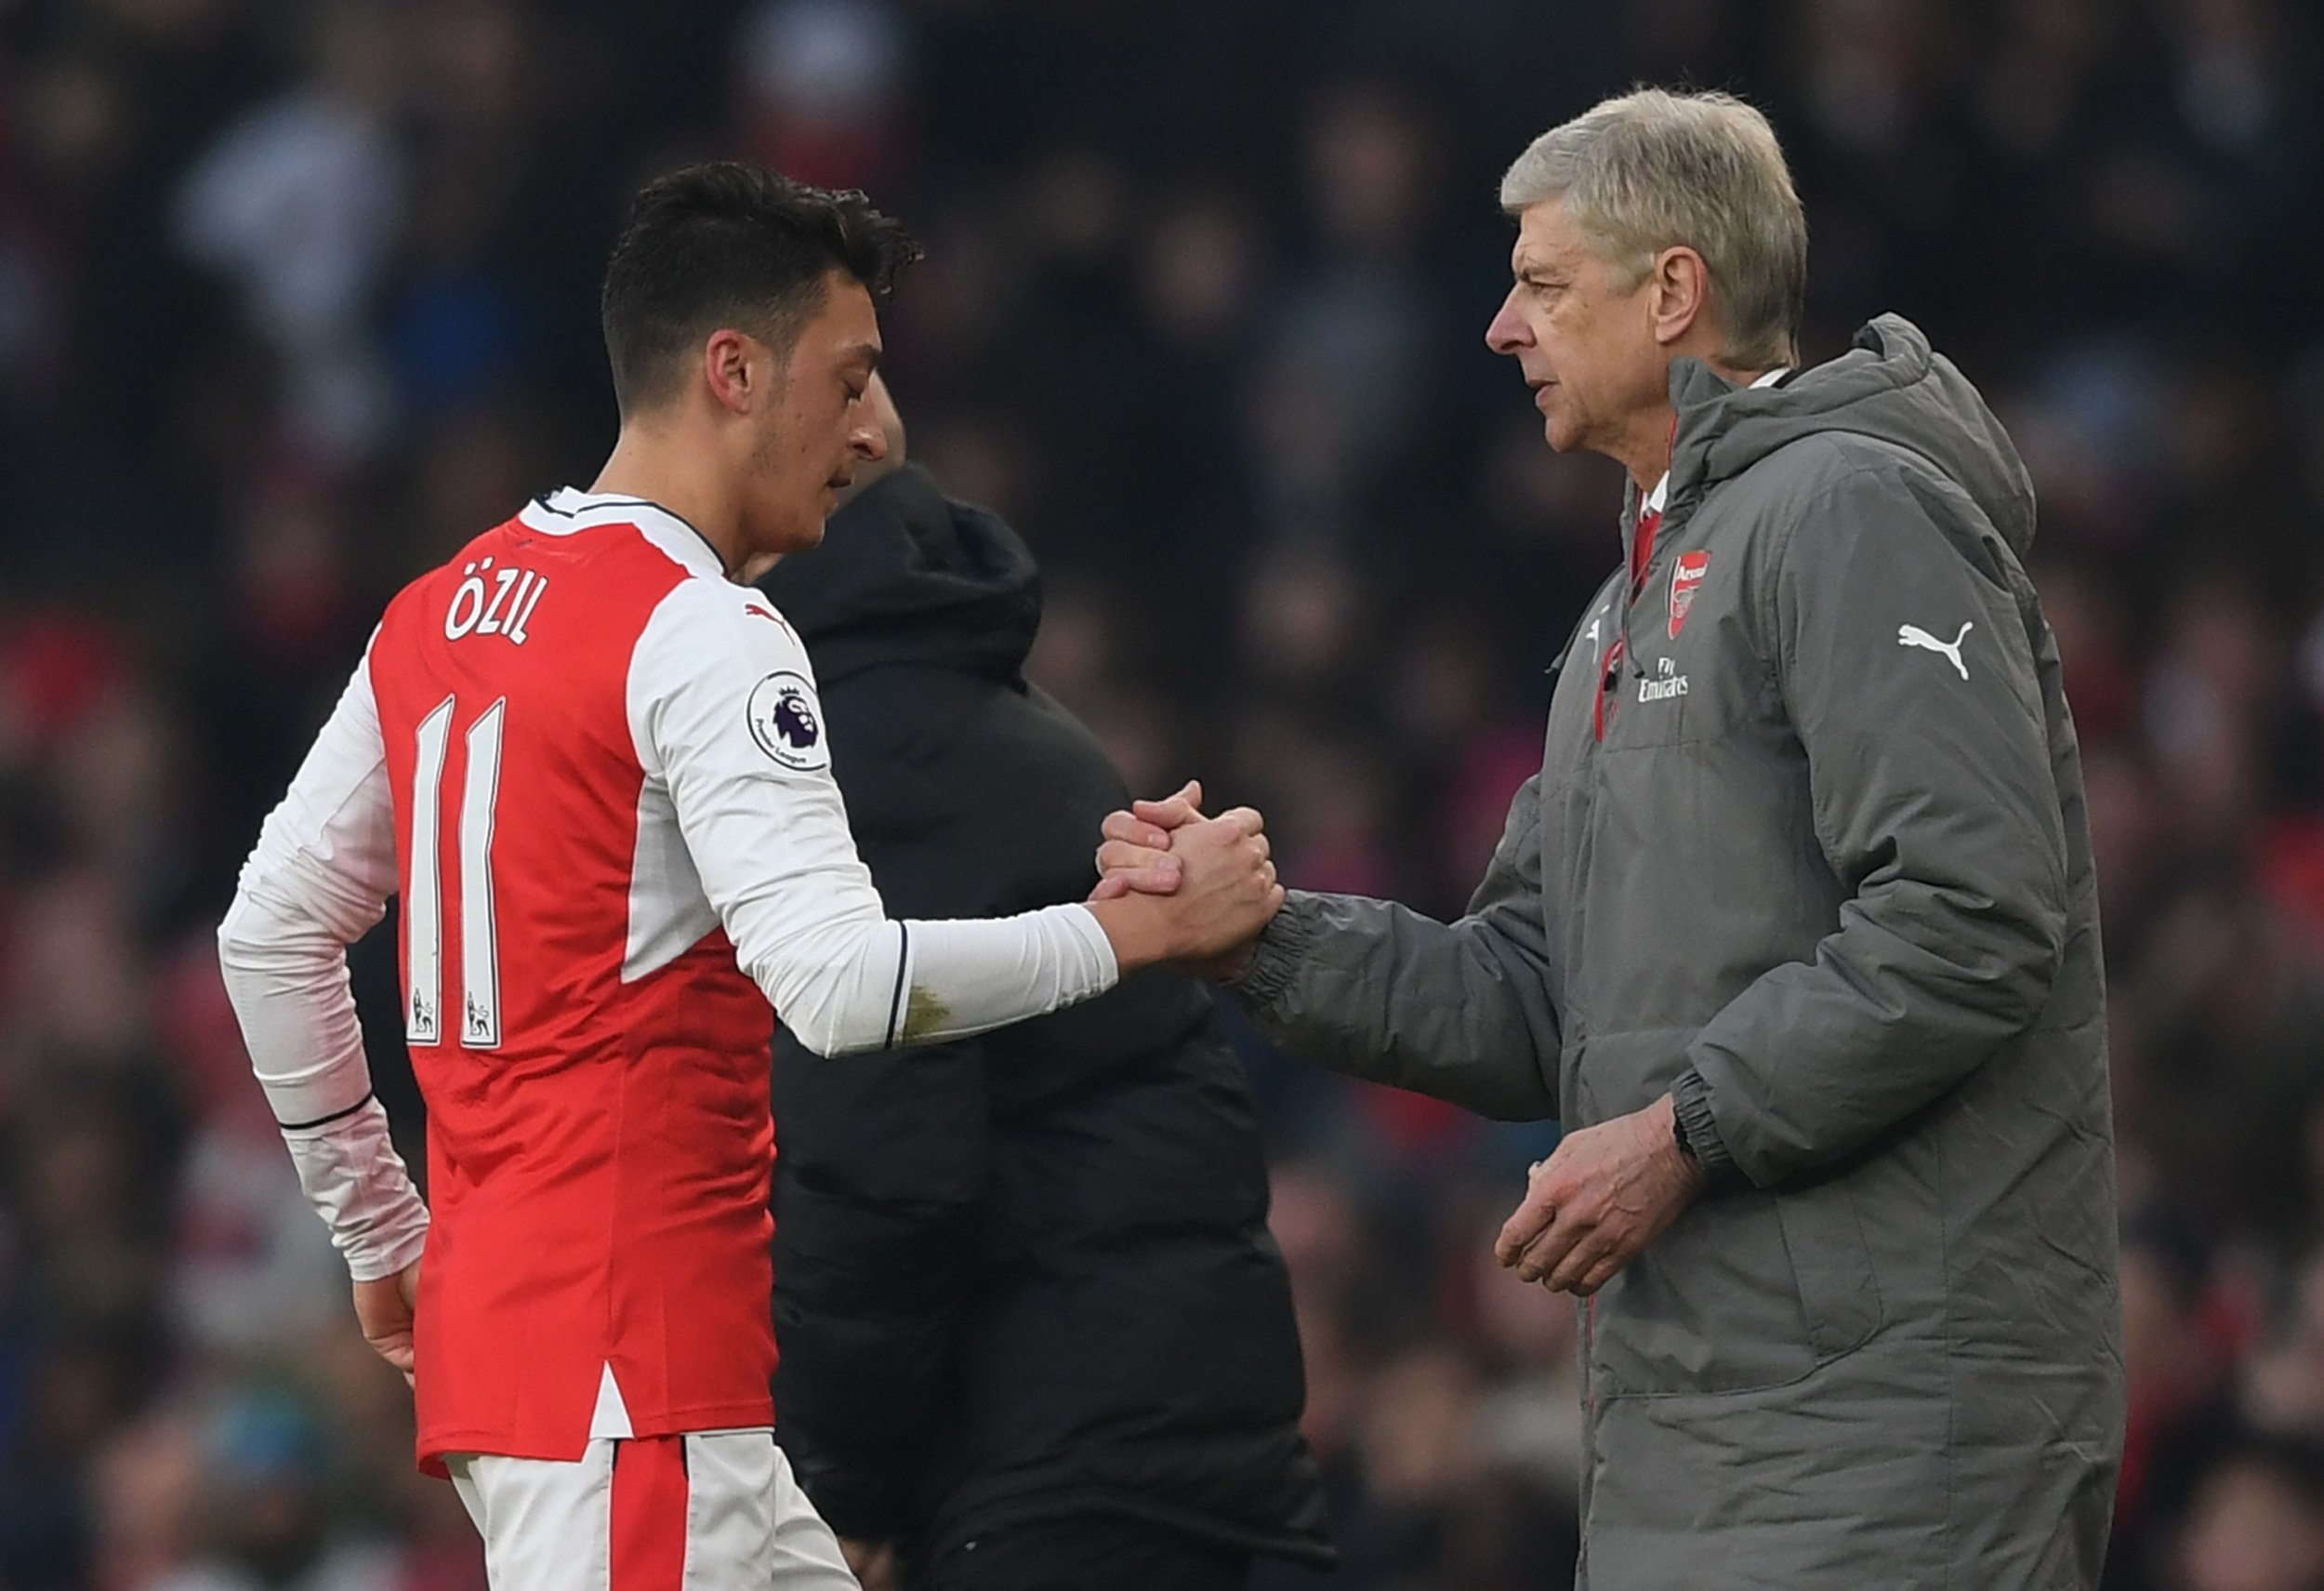 Arsenal star Mesut Ozil, left, with manager Arsene Wenger.